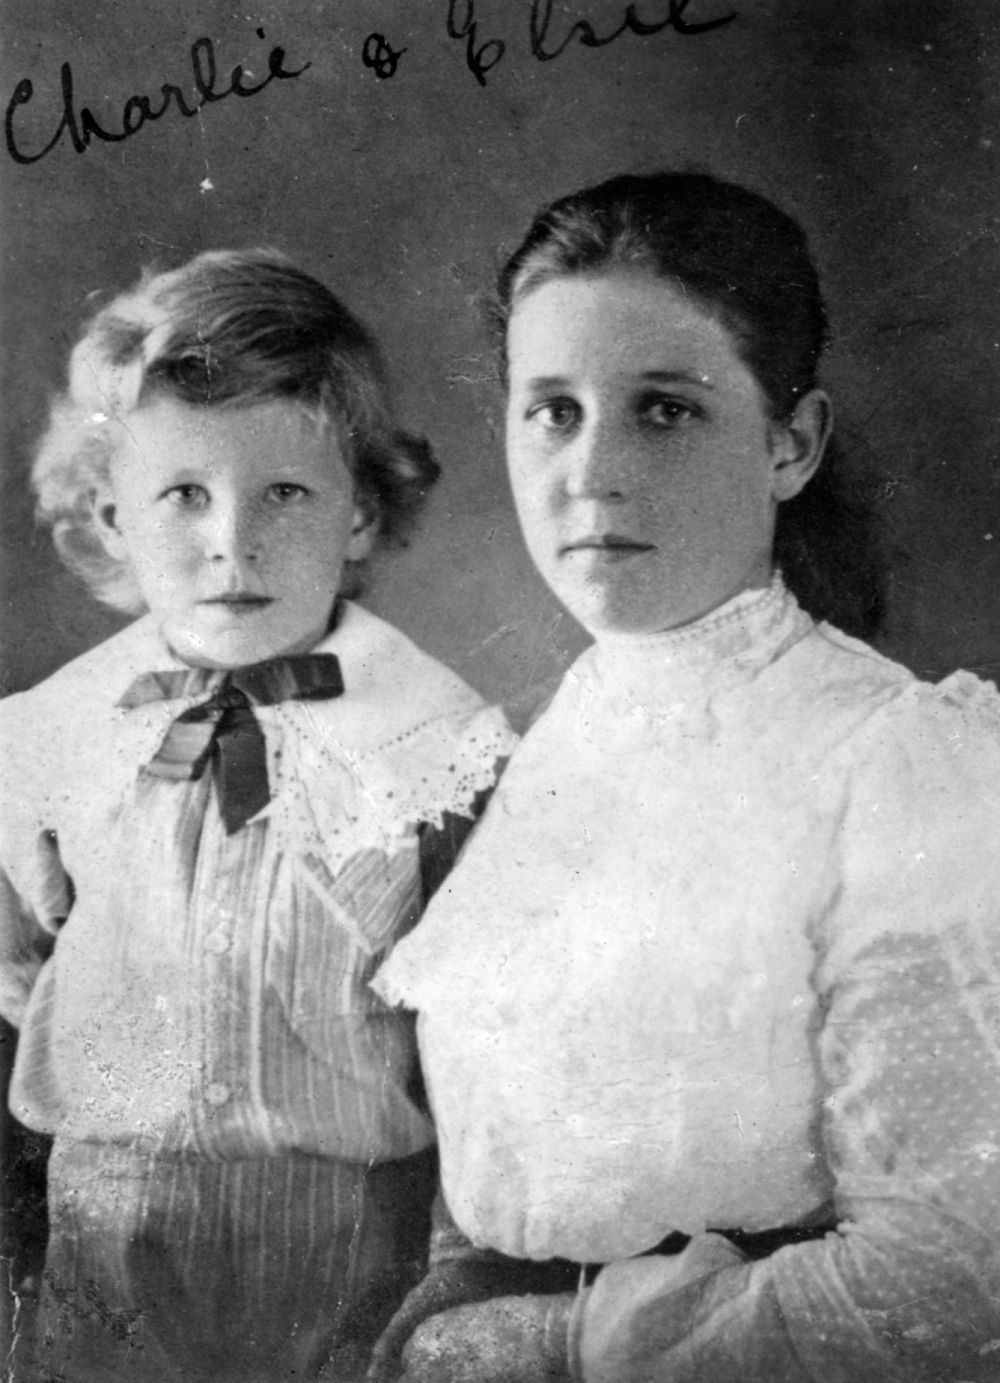 Charles Kingsford Smith as a small child with his sister Elsie Brisbane ca 1901